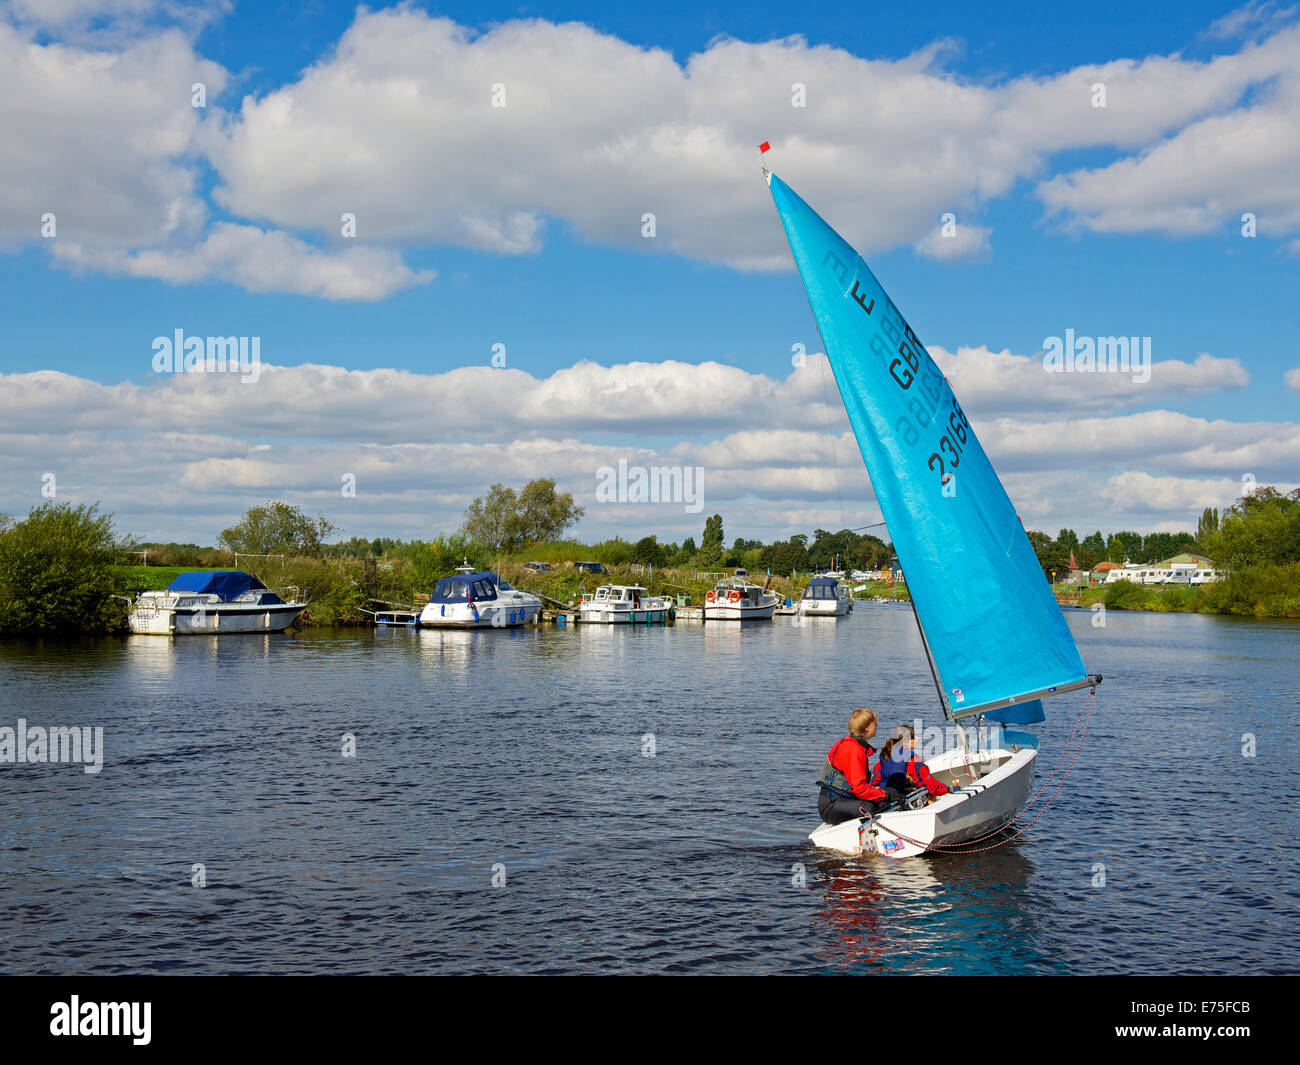 Sailing dinghy on the River Ouse at Naburn, near York, North Yorkshire, England UK - Stock Image